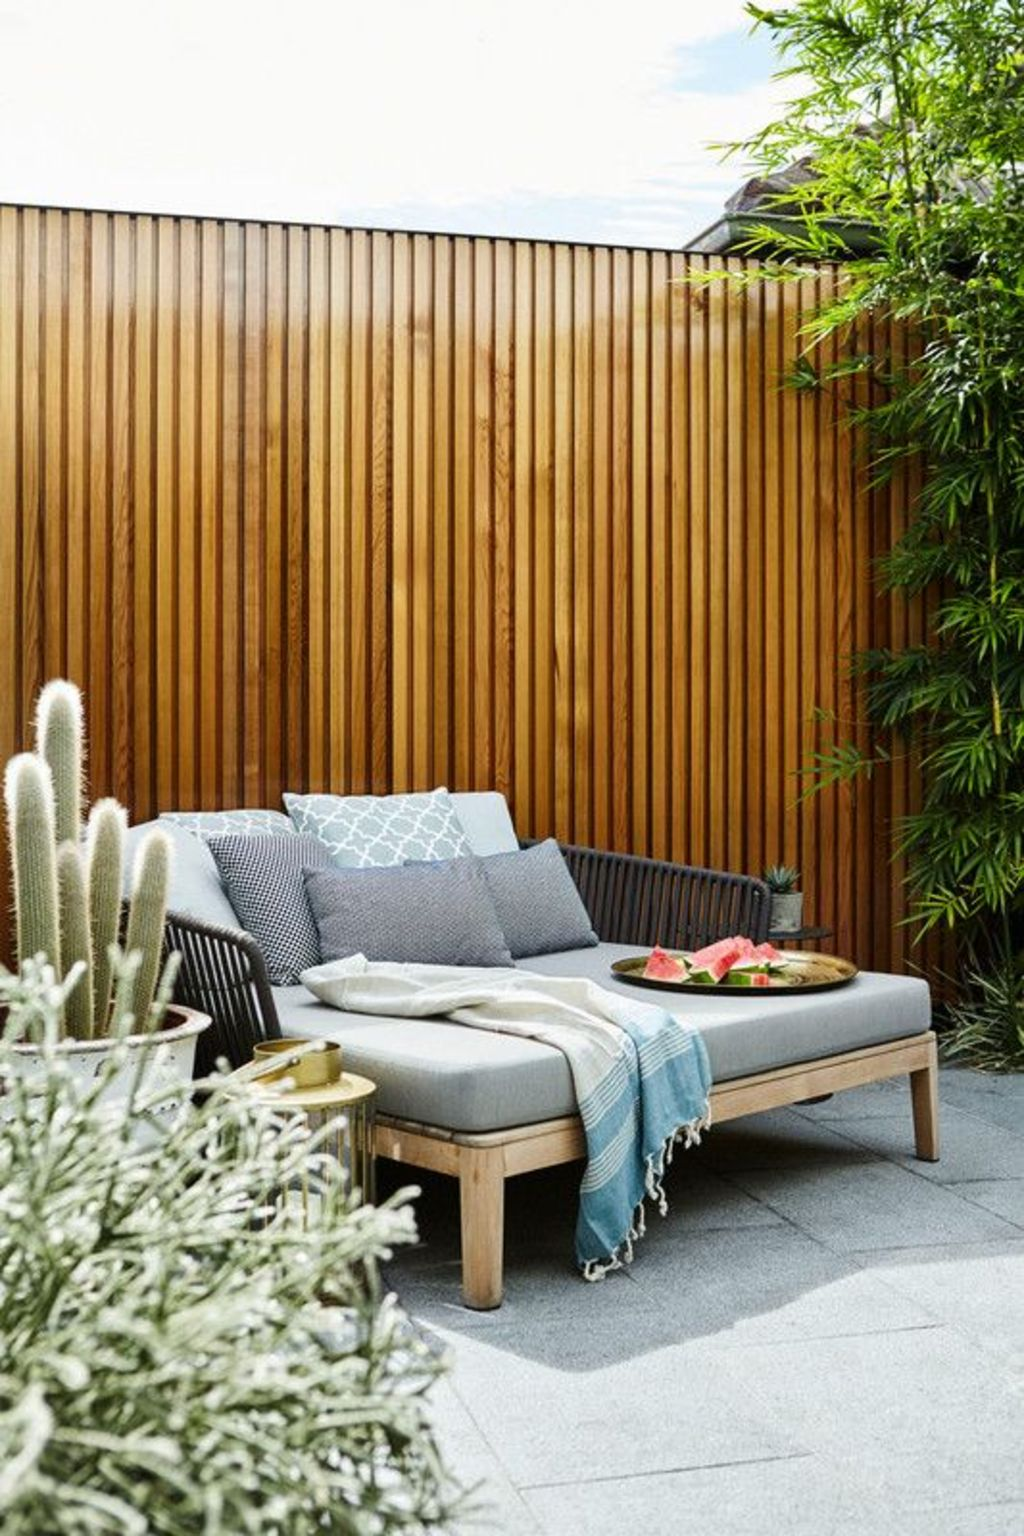 Ideas for your outdoor living areas fireplaces fire pits outdoor kitchens patios living areas and more Part 1